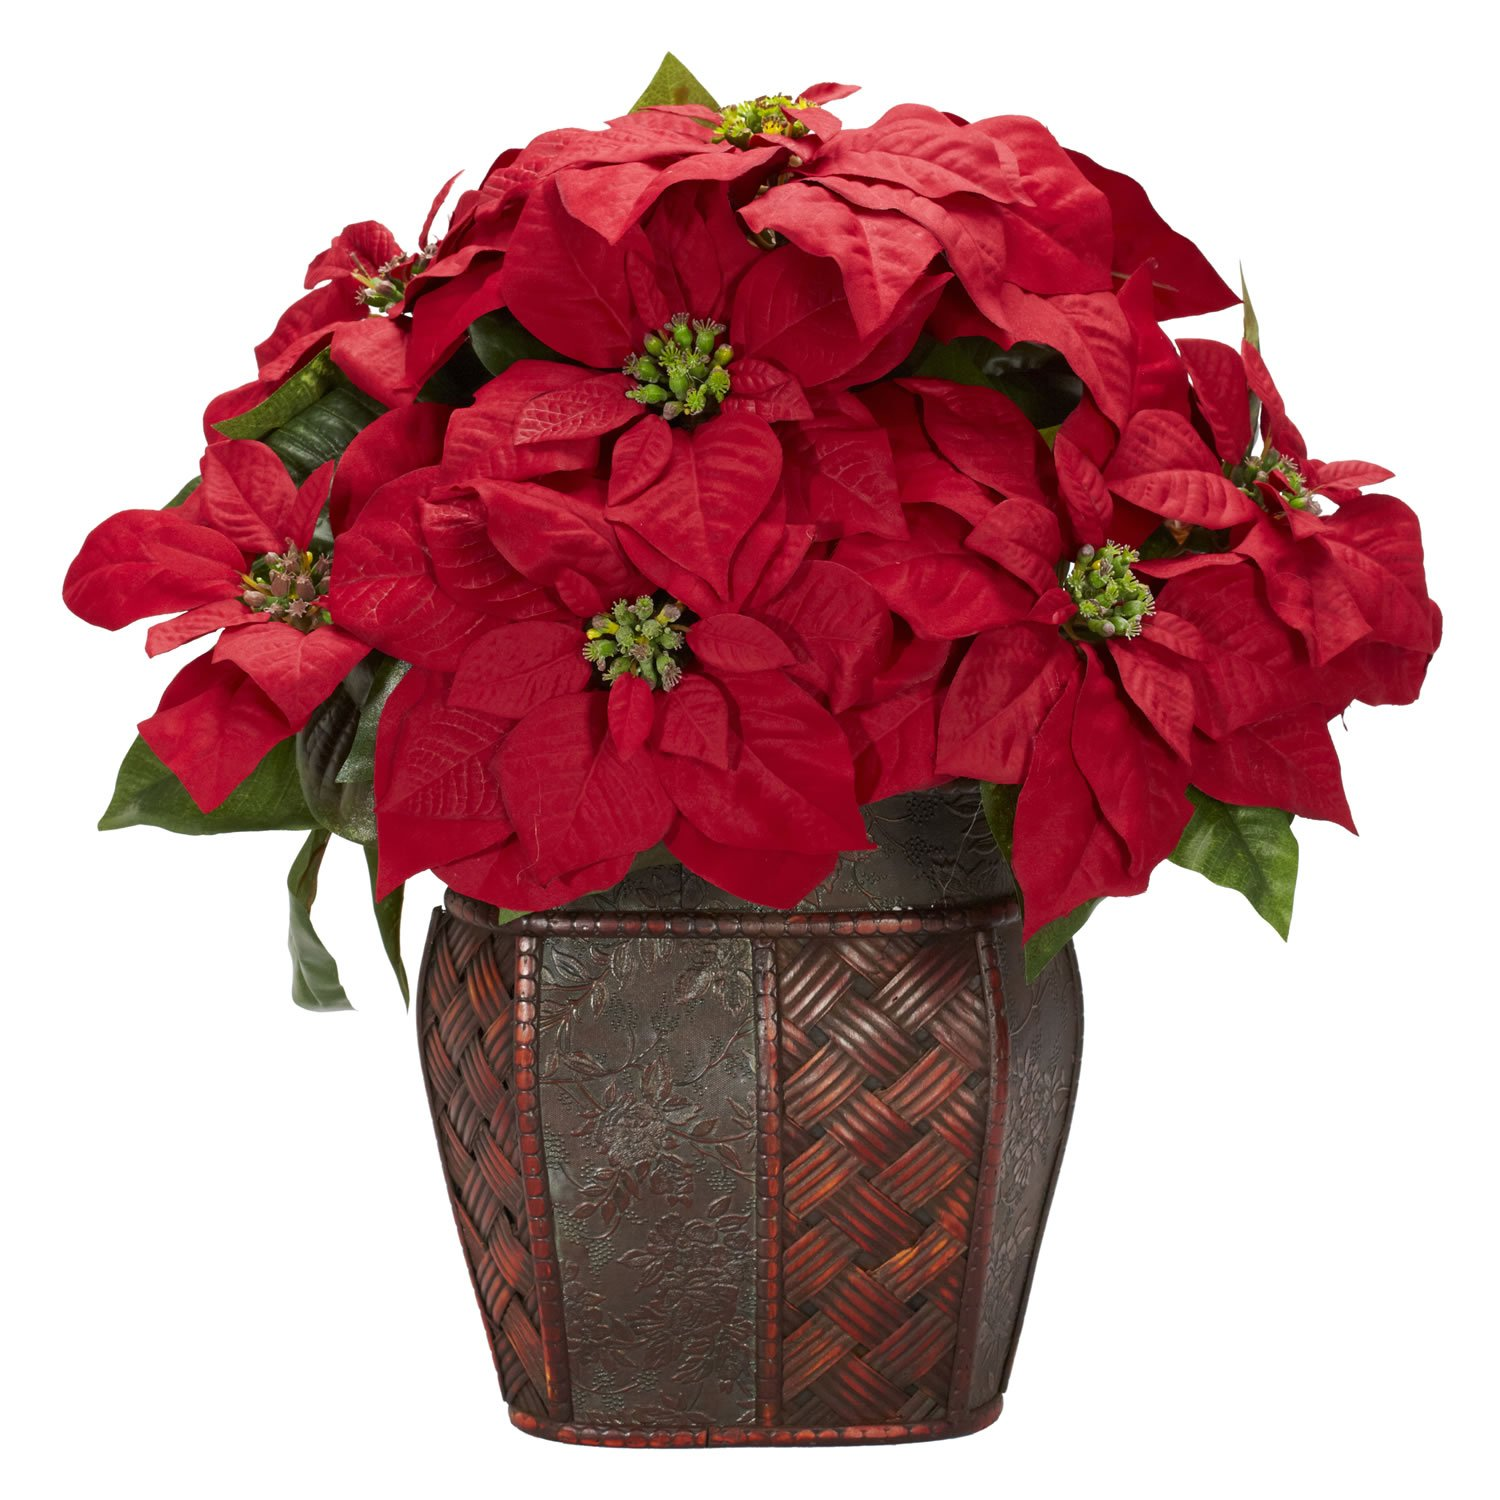 Amazon nearly natural 1264 poinsettia with decorative vase amazon nearly natural 1264 poinsettia with decorative vase silk flower arrangement red home kitchen reviewsmspy